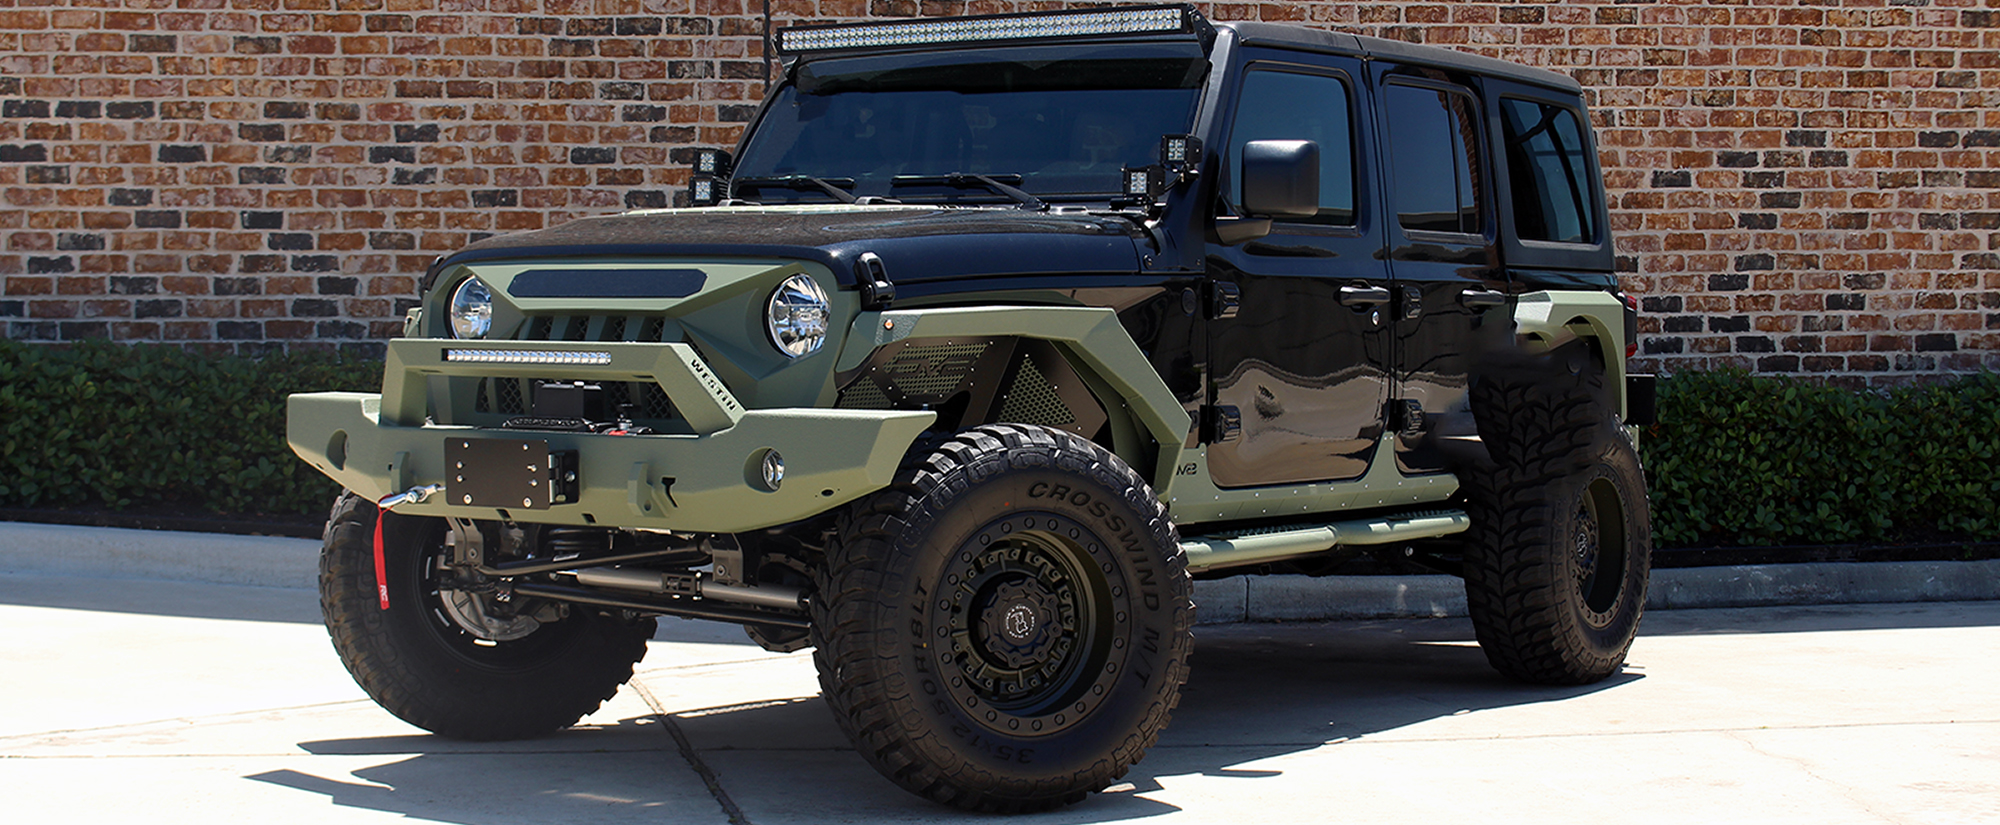 2020 Black and Green JL Jeep Left Fro